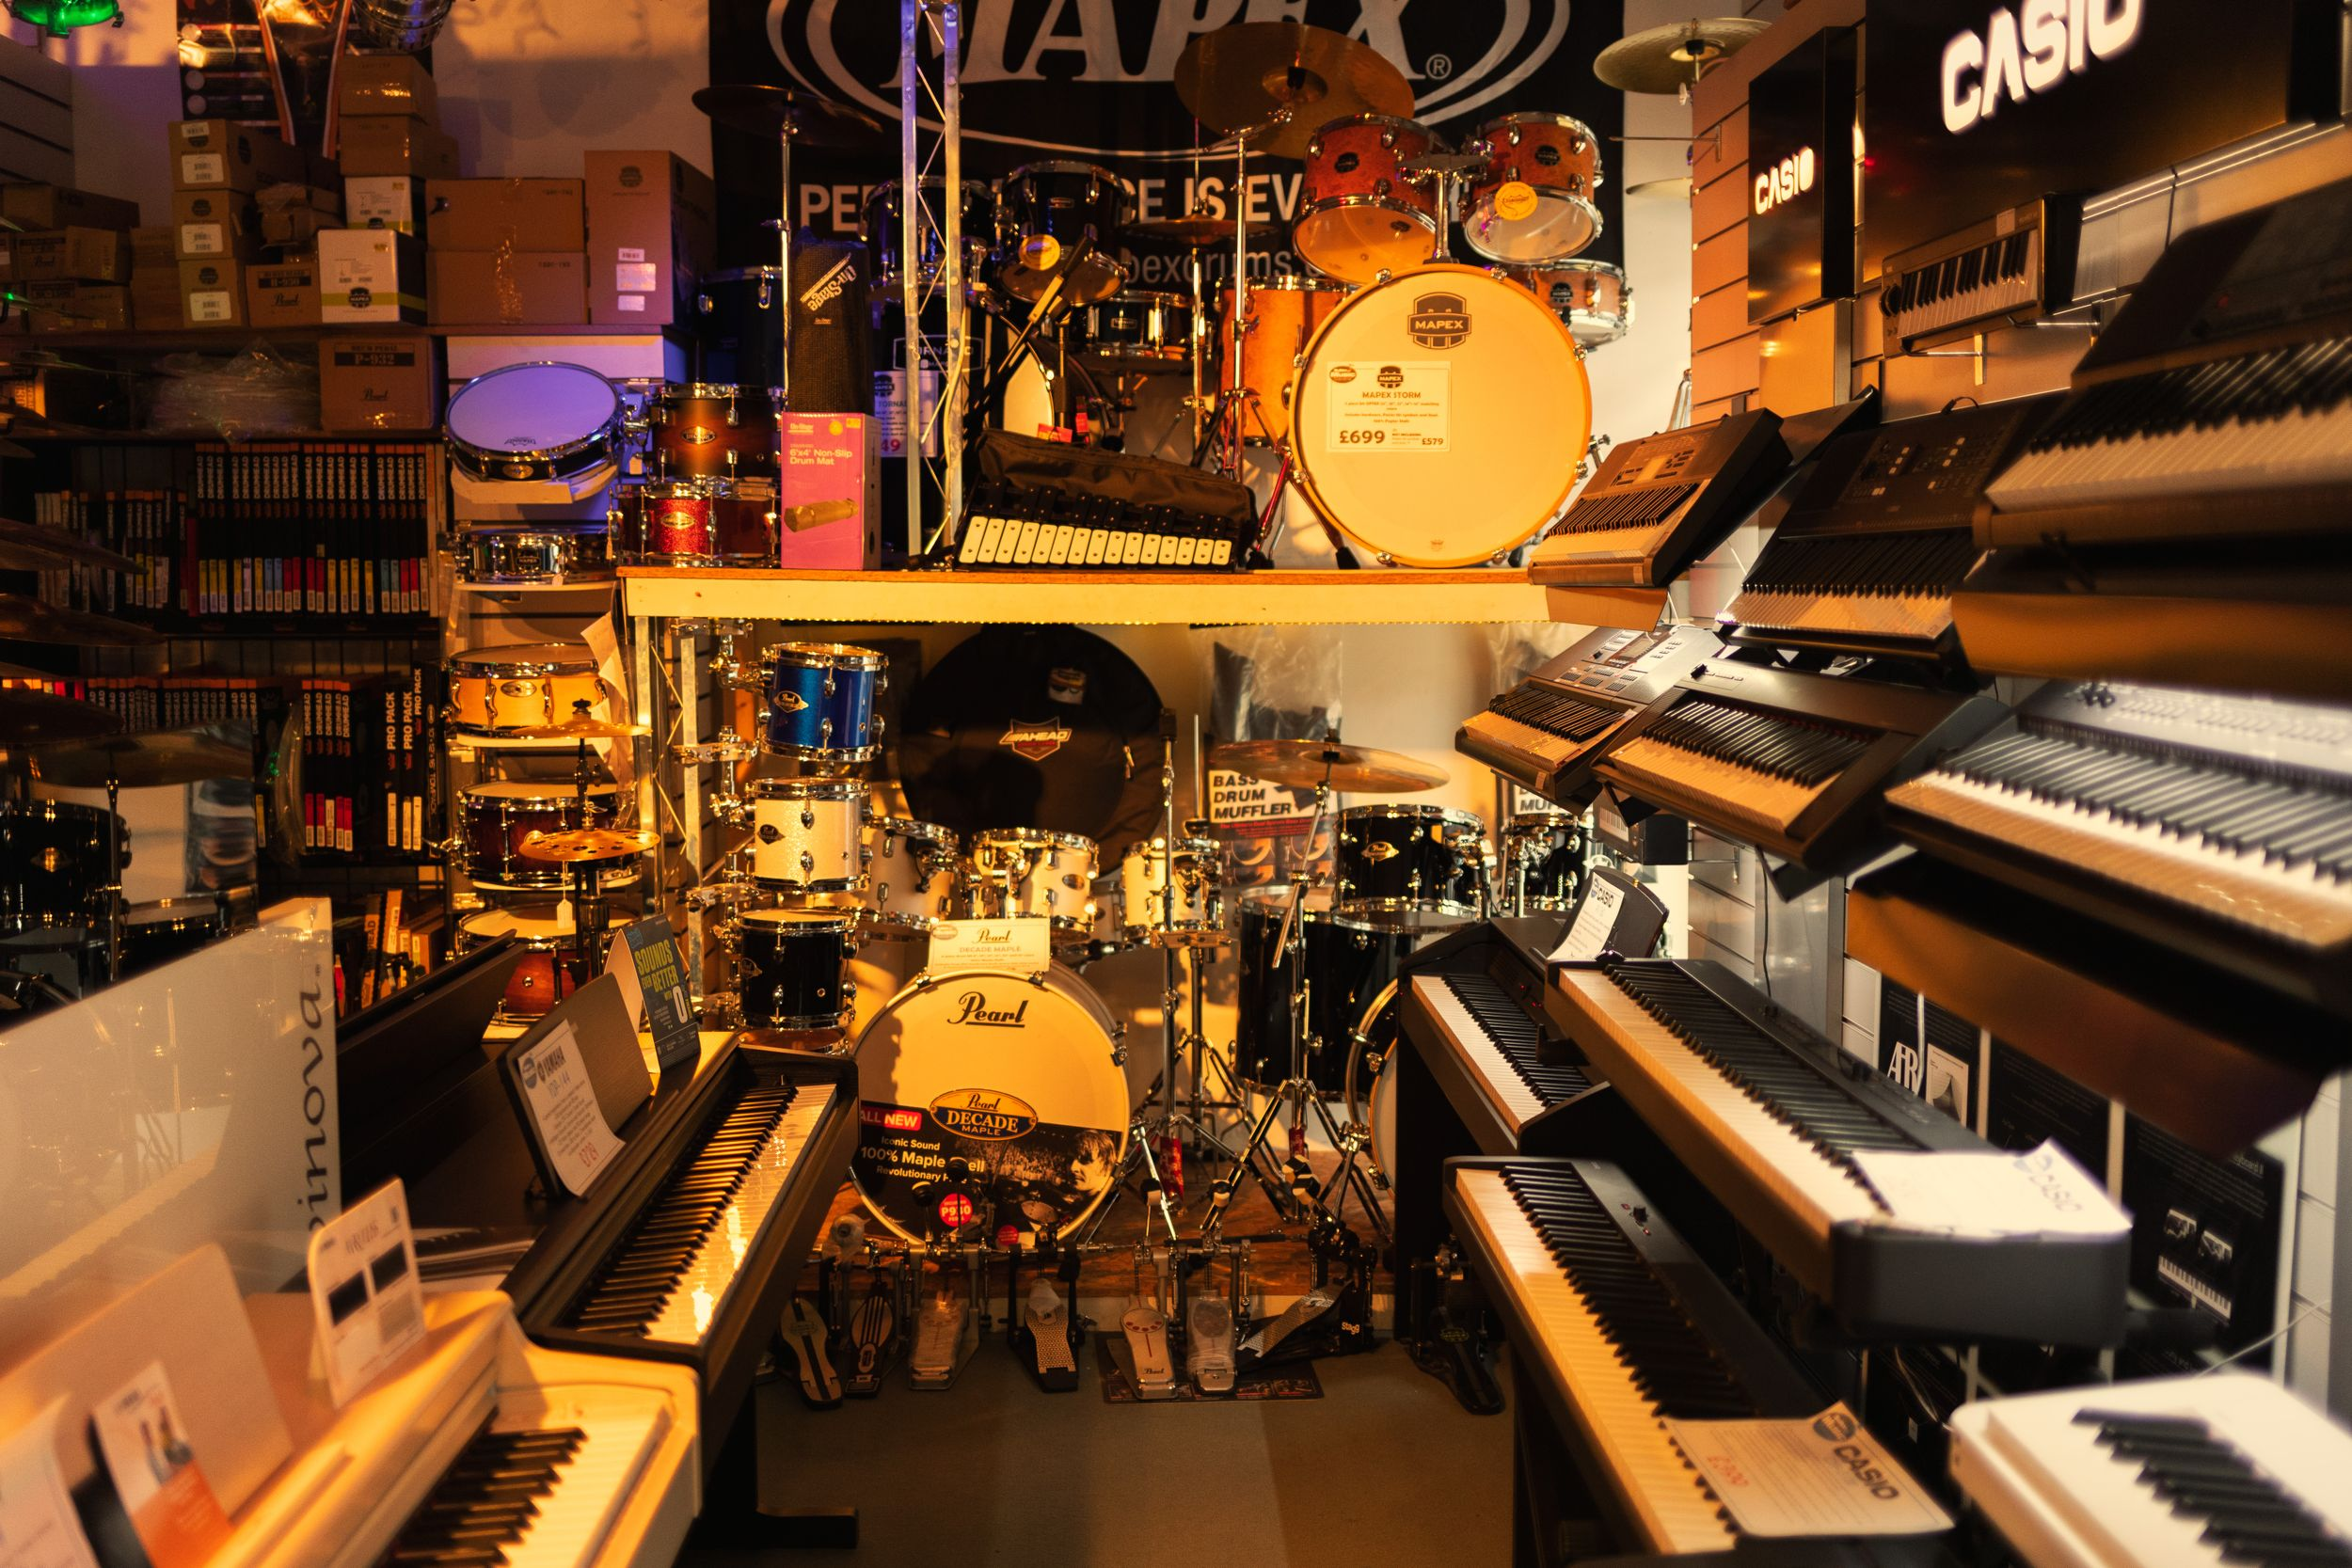 Collection of pianos, keyboards and drums.